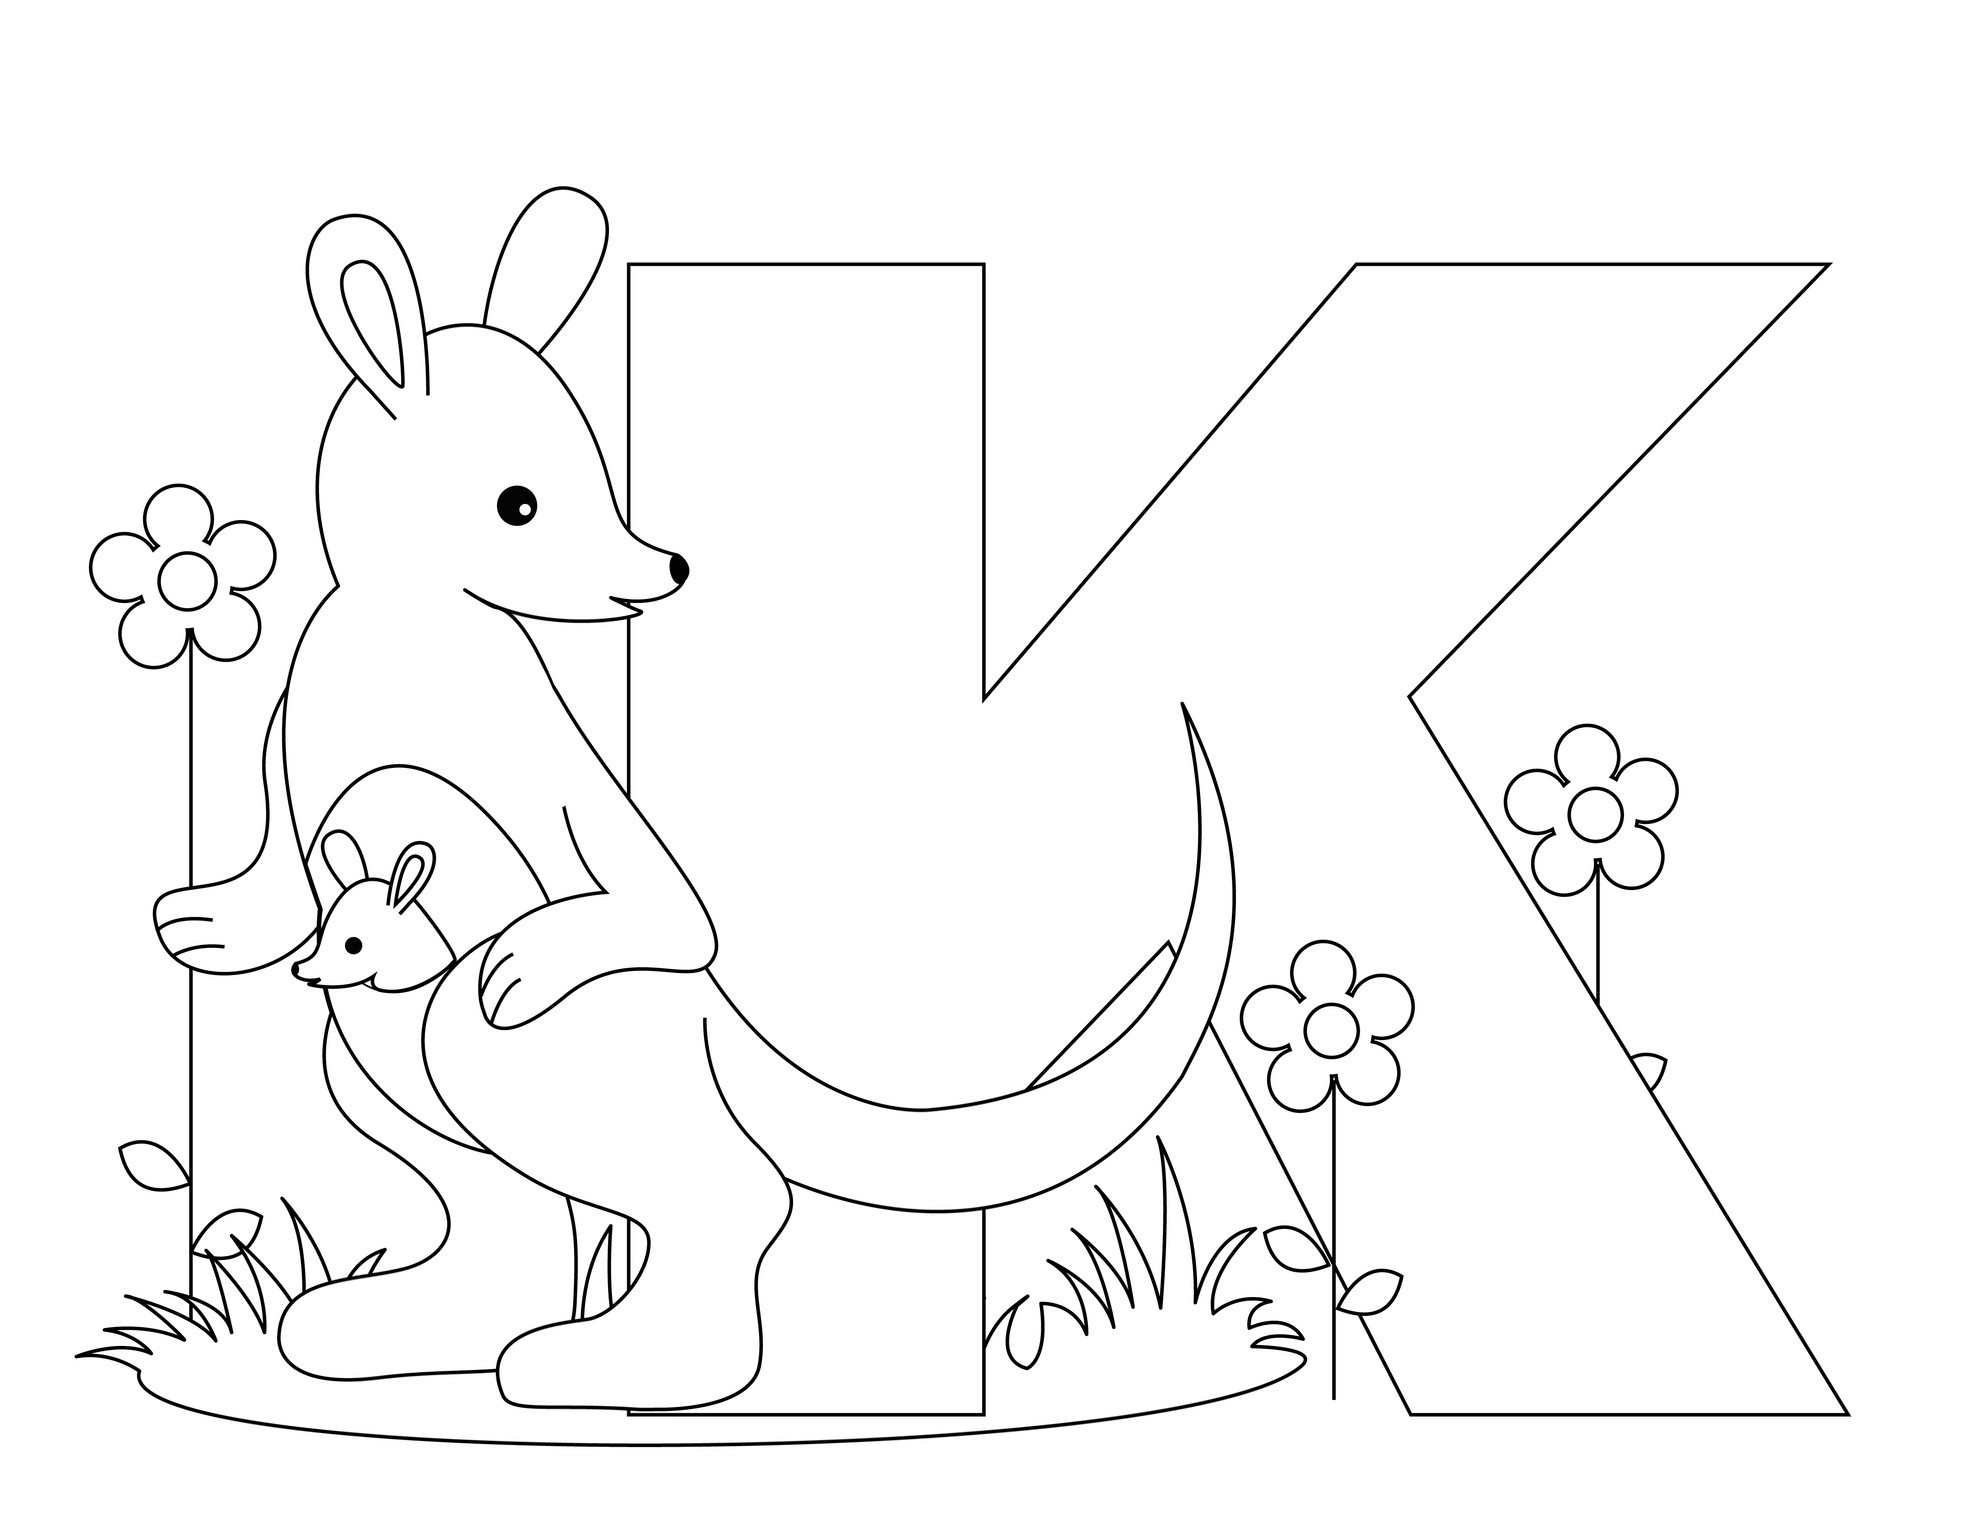 Letter o coloring pages - Alphabet Coloring Pages Letter K